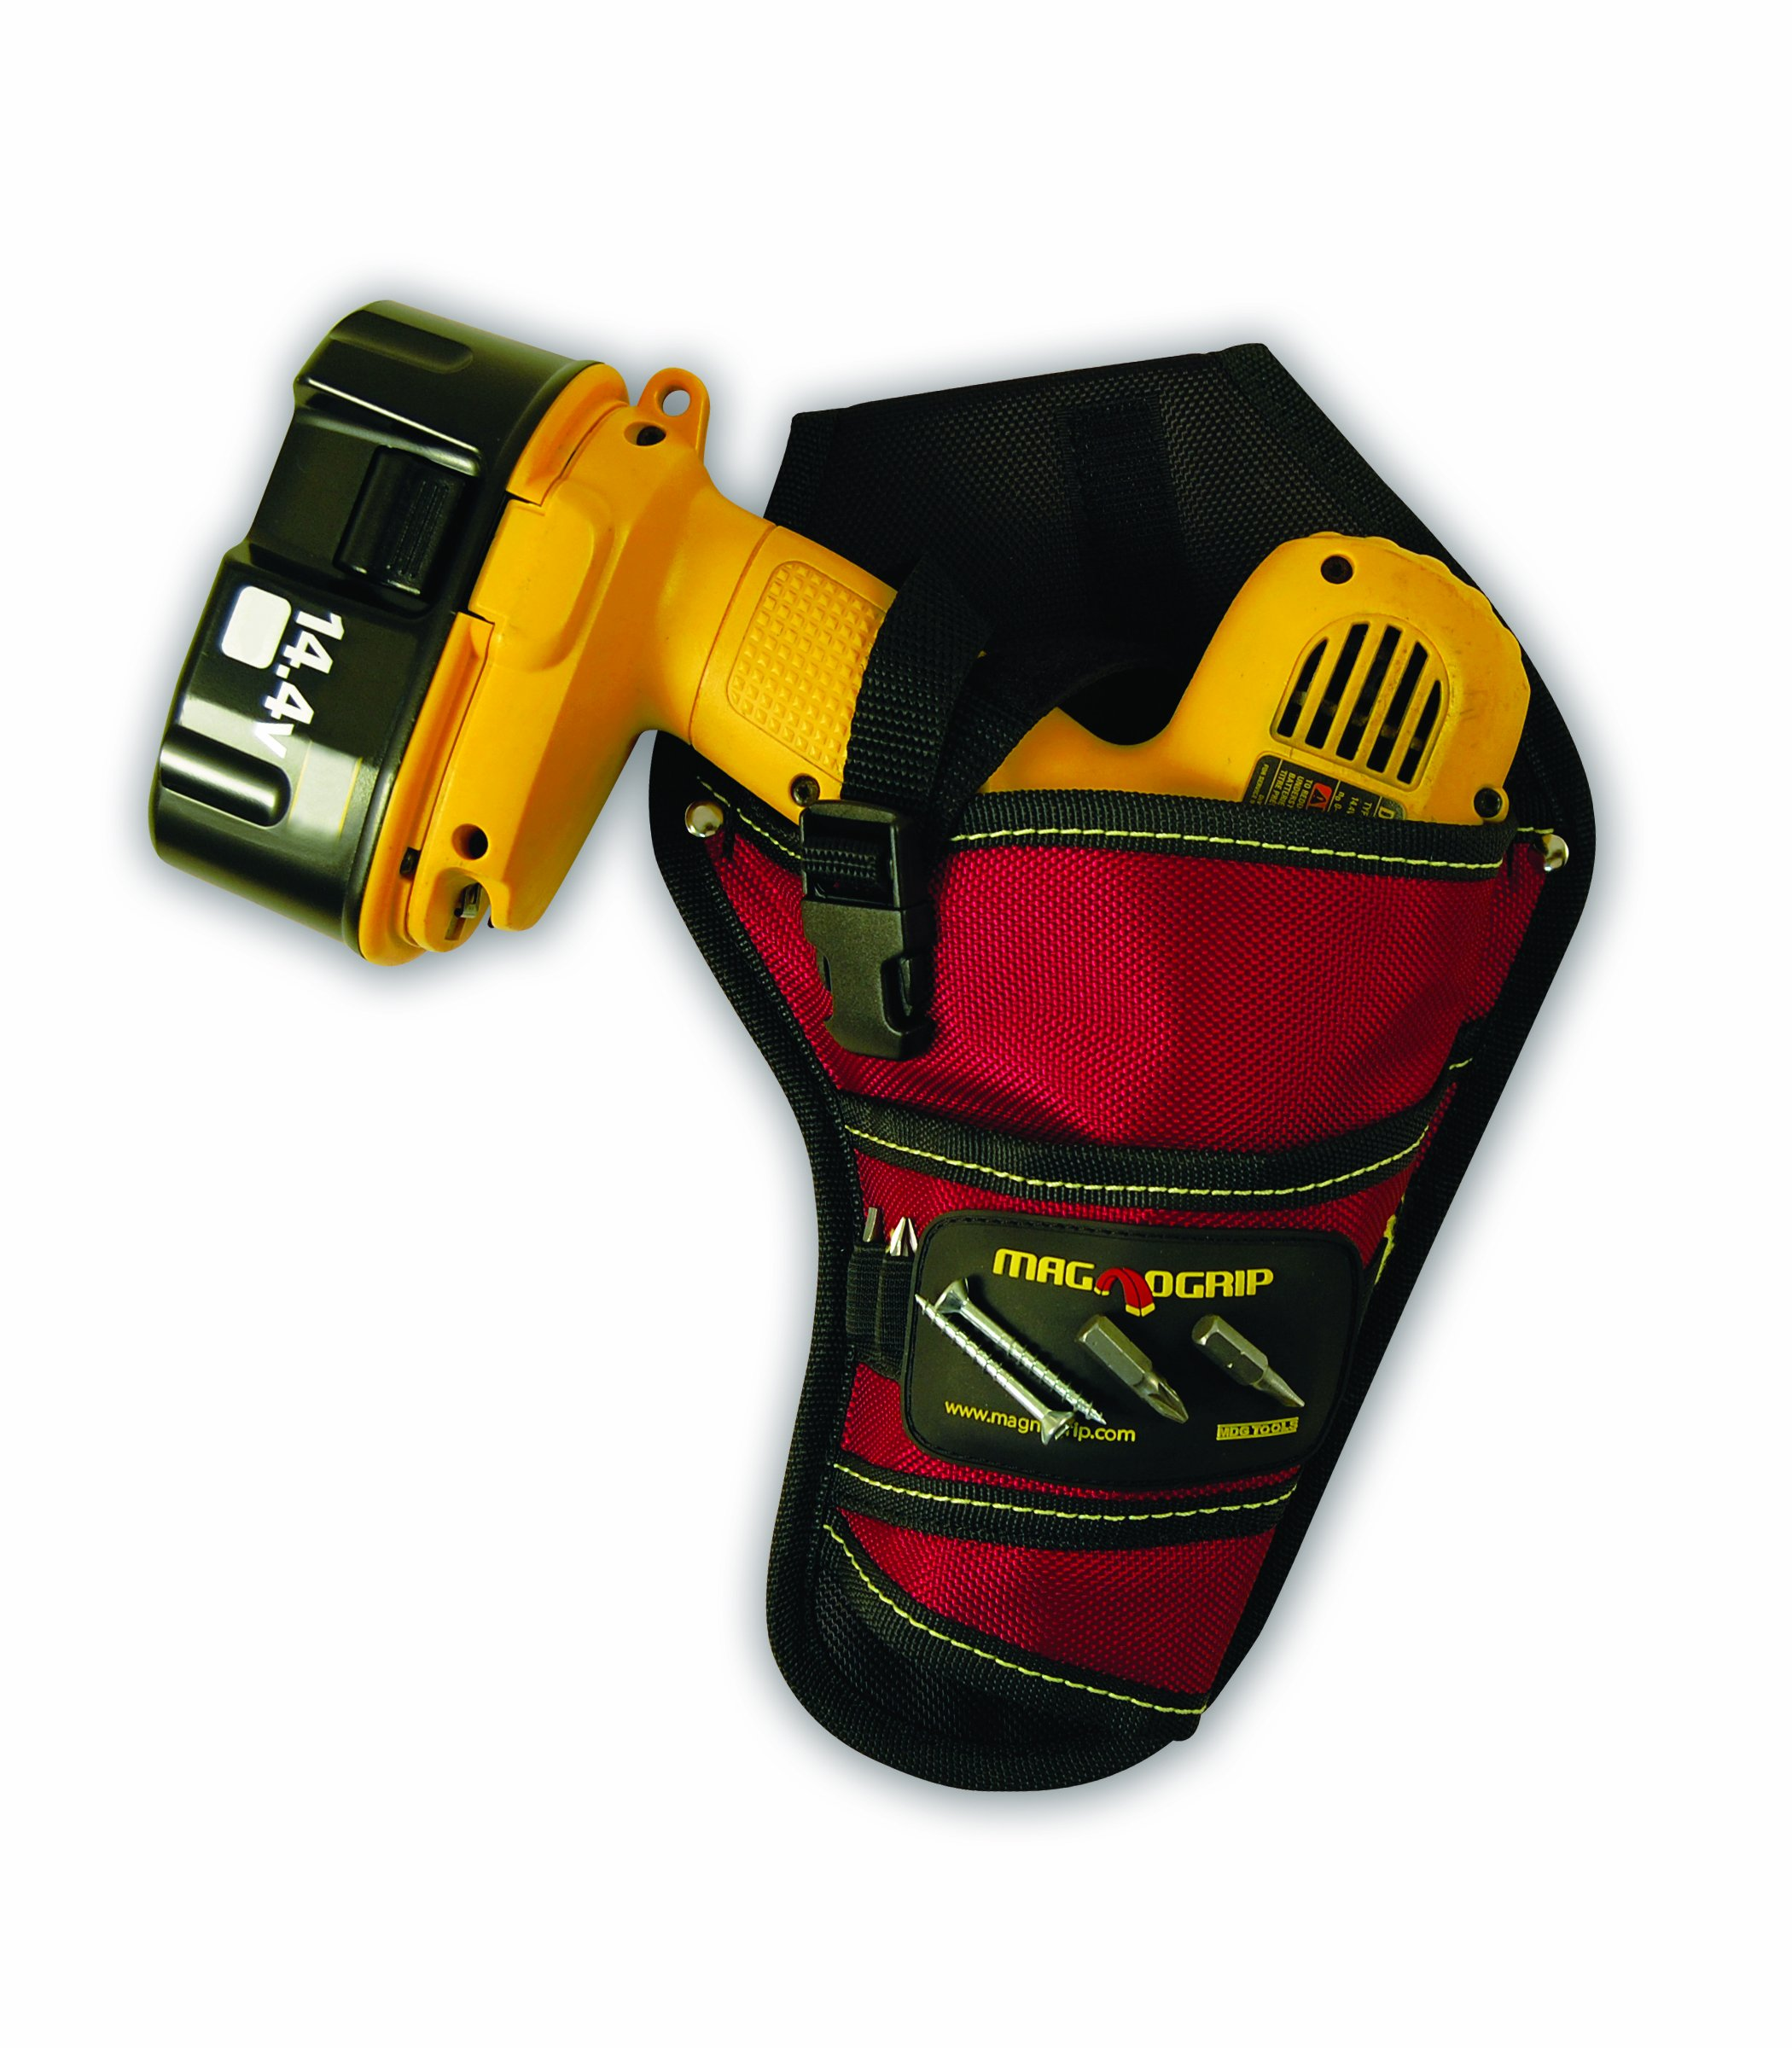 MagnoGrip 002-191 Magnetic Drill Holster